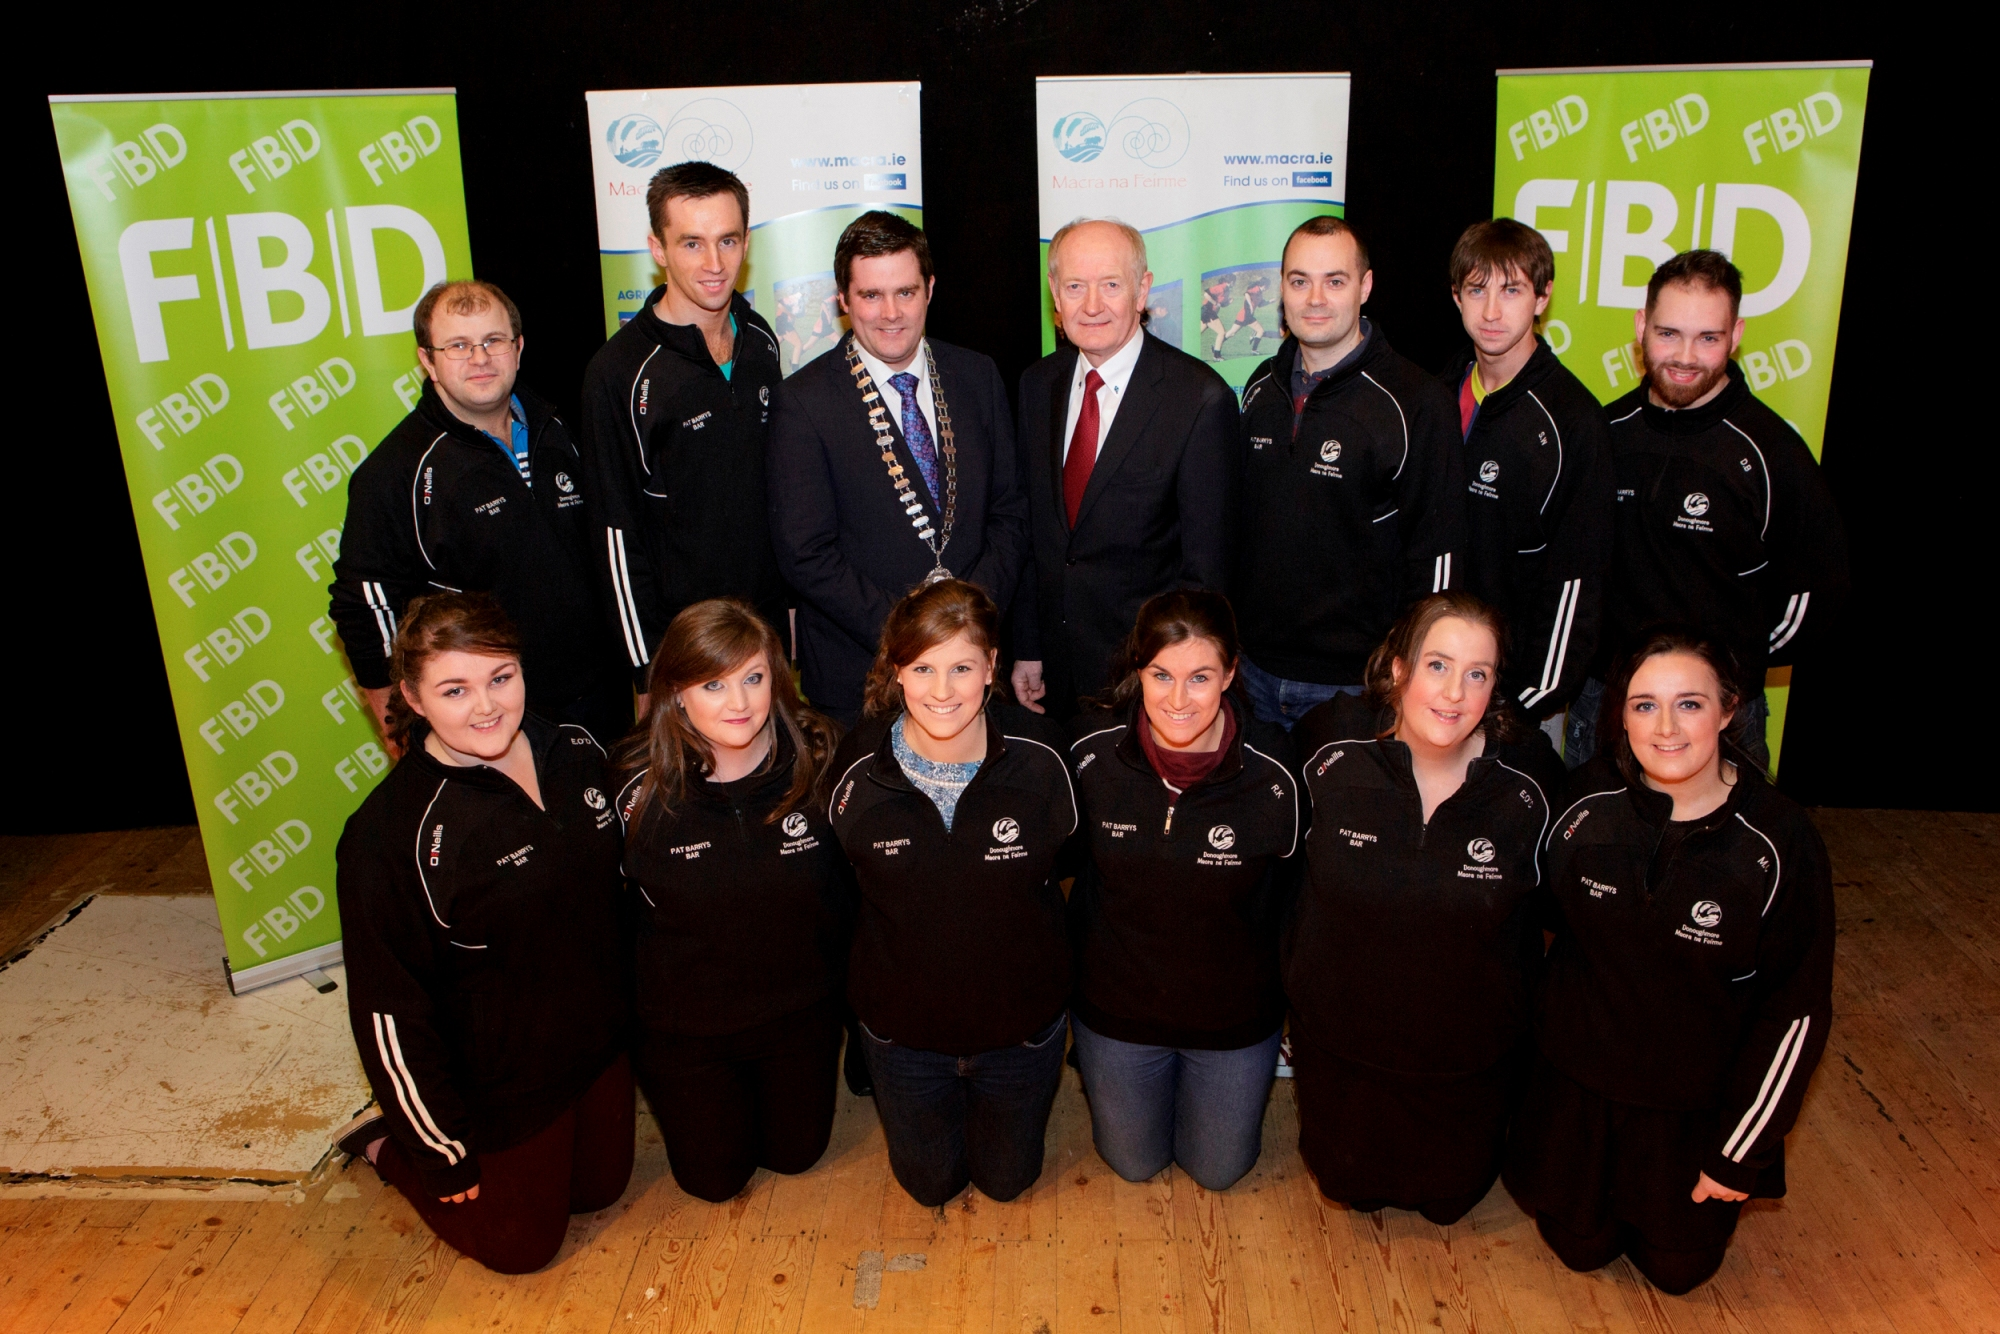 Macra's FBD Capers Title Stays in Cork